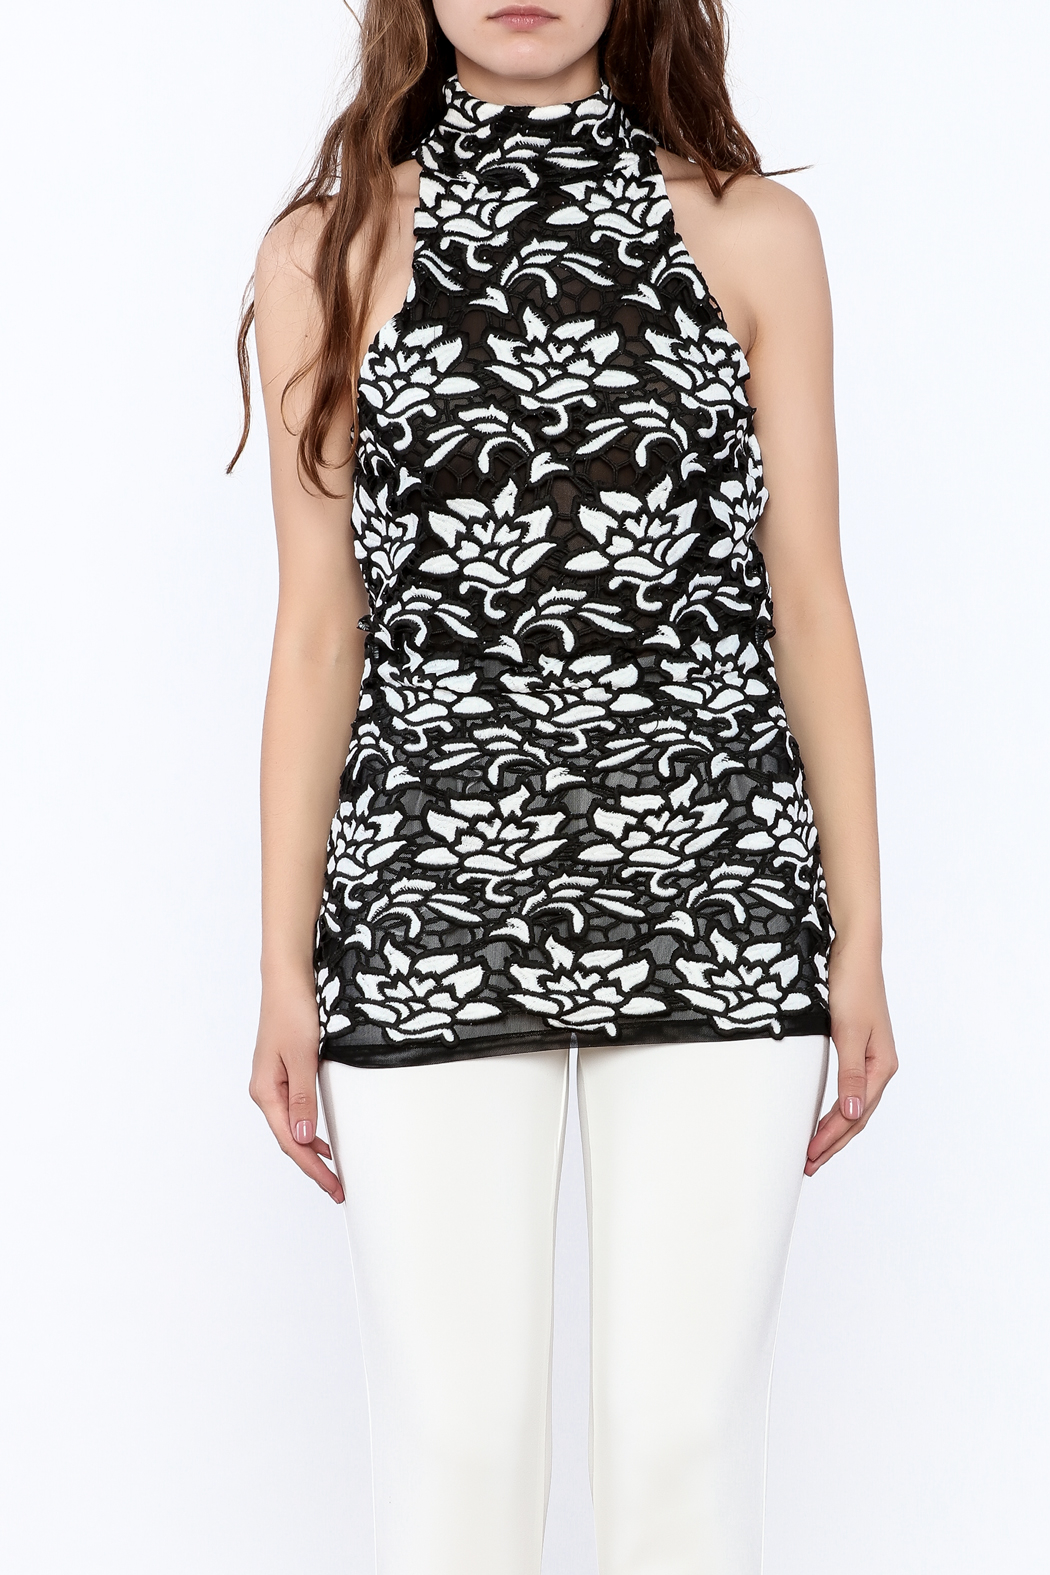 Julian Chang Black Floral Sleeveless Top - Side Cropped Image